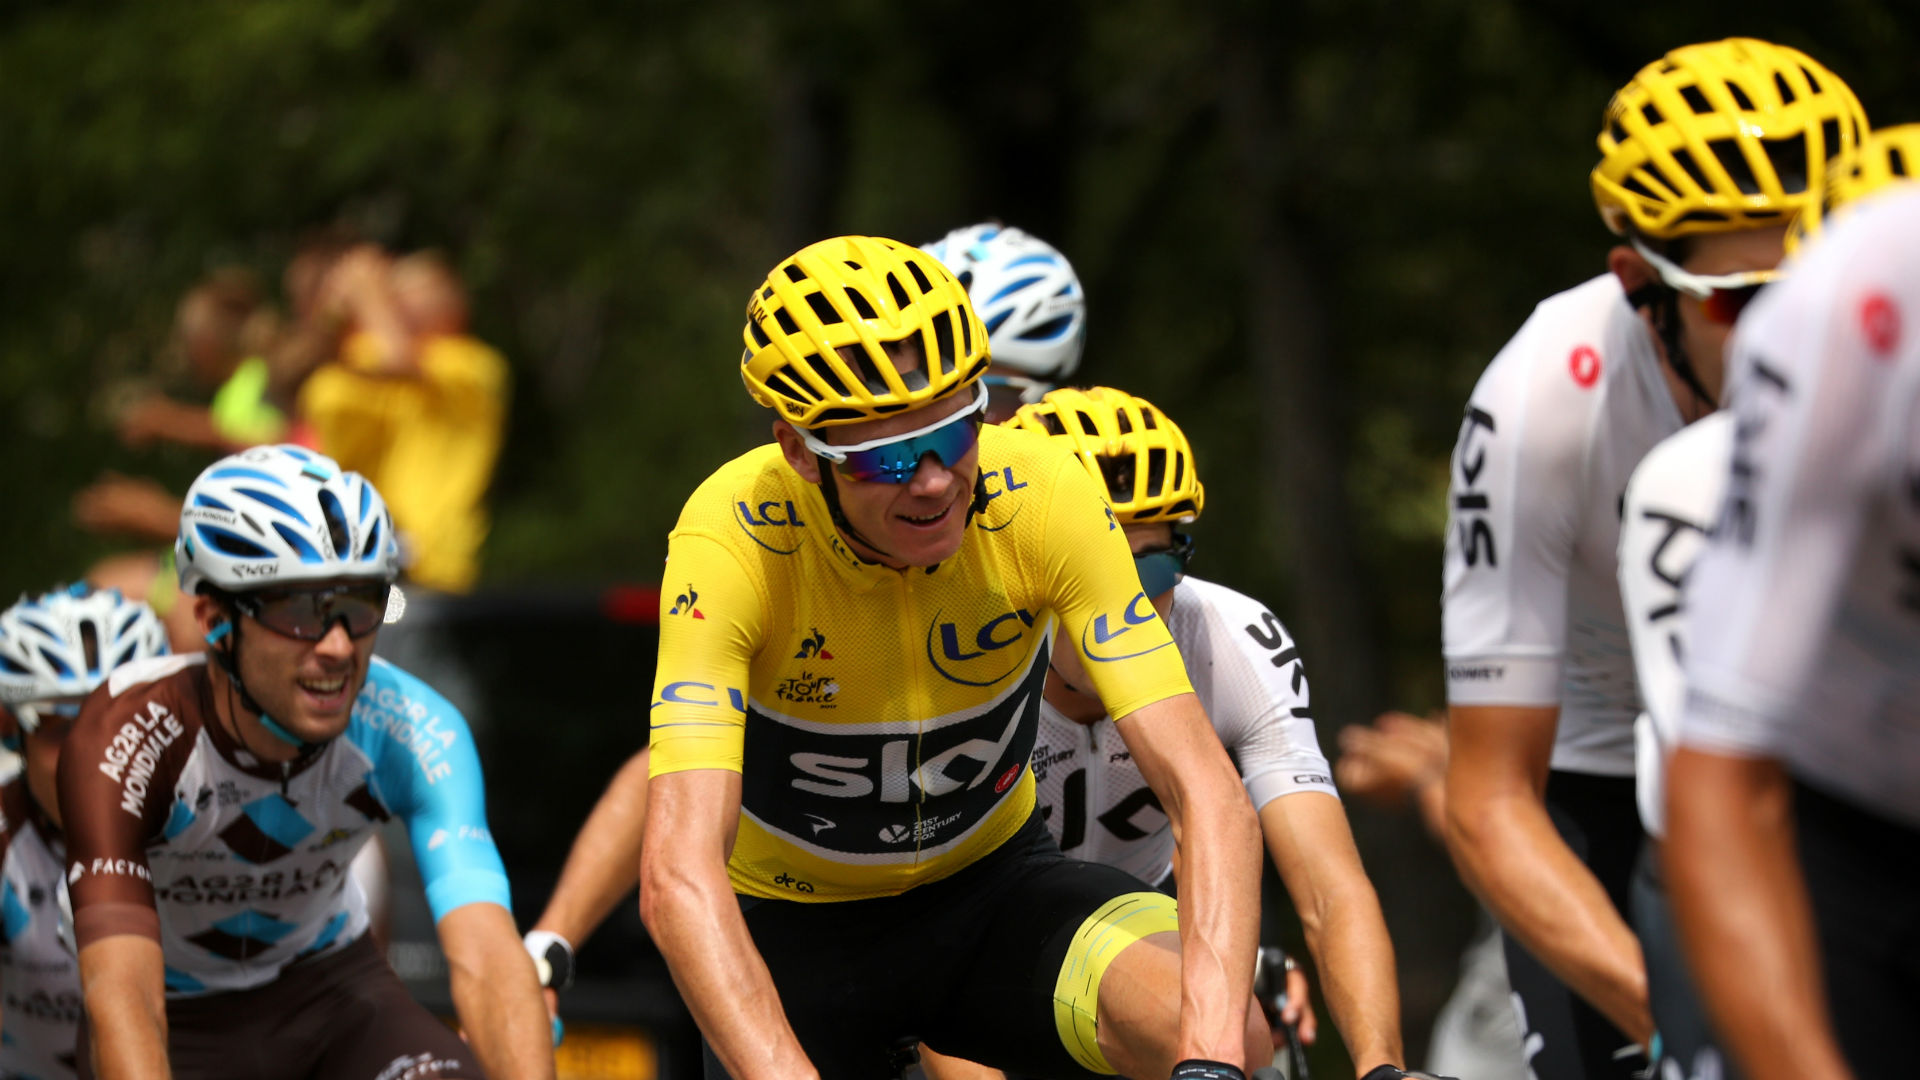 Chris Froome should forget about the Giro-Tour double and concentrate on winning a fifth yellow jersey, according to Fabian Cancellara.